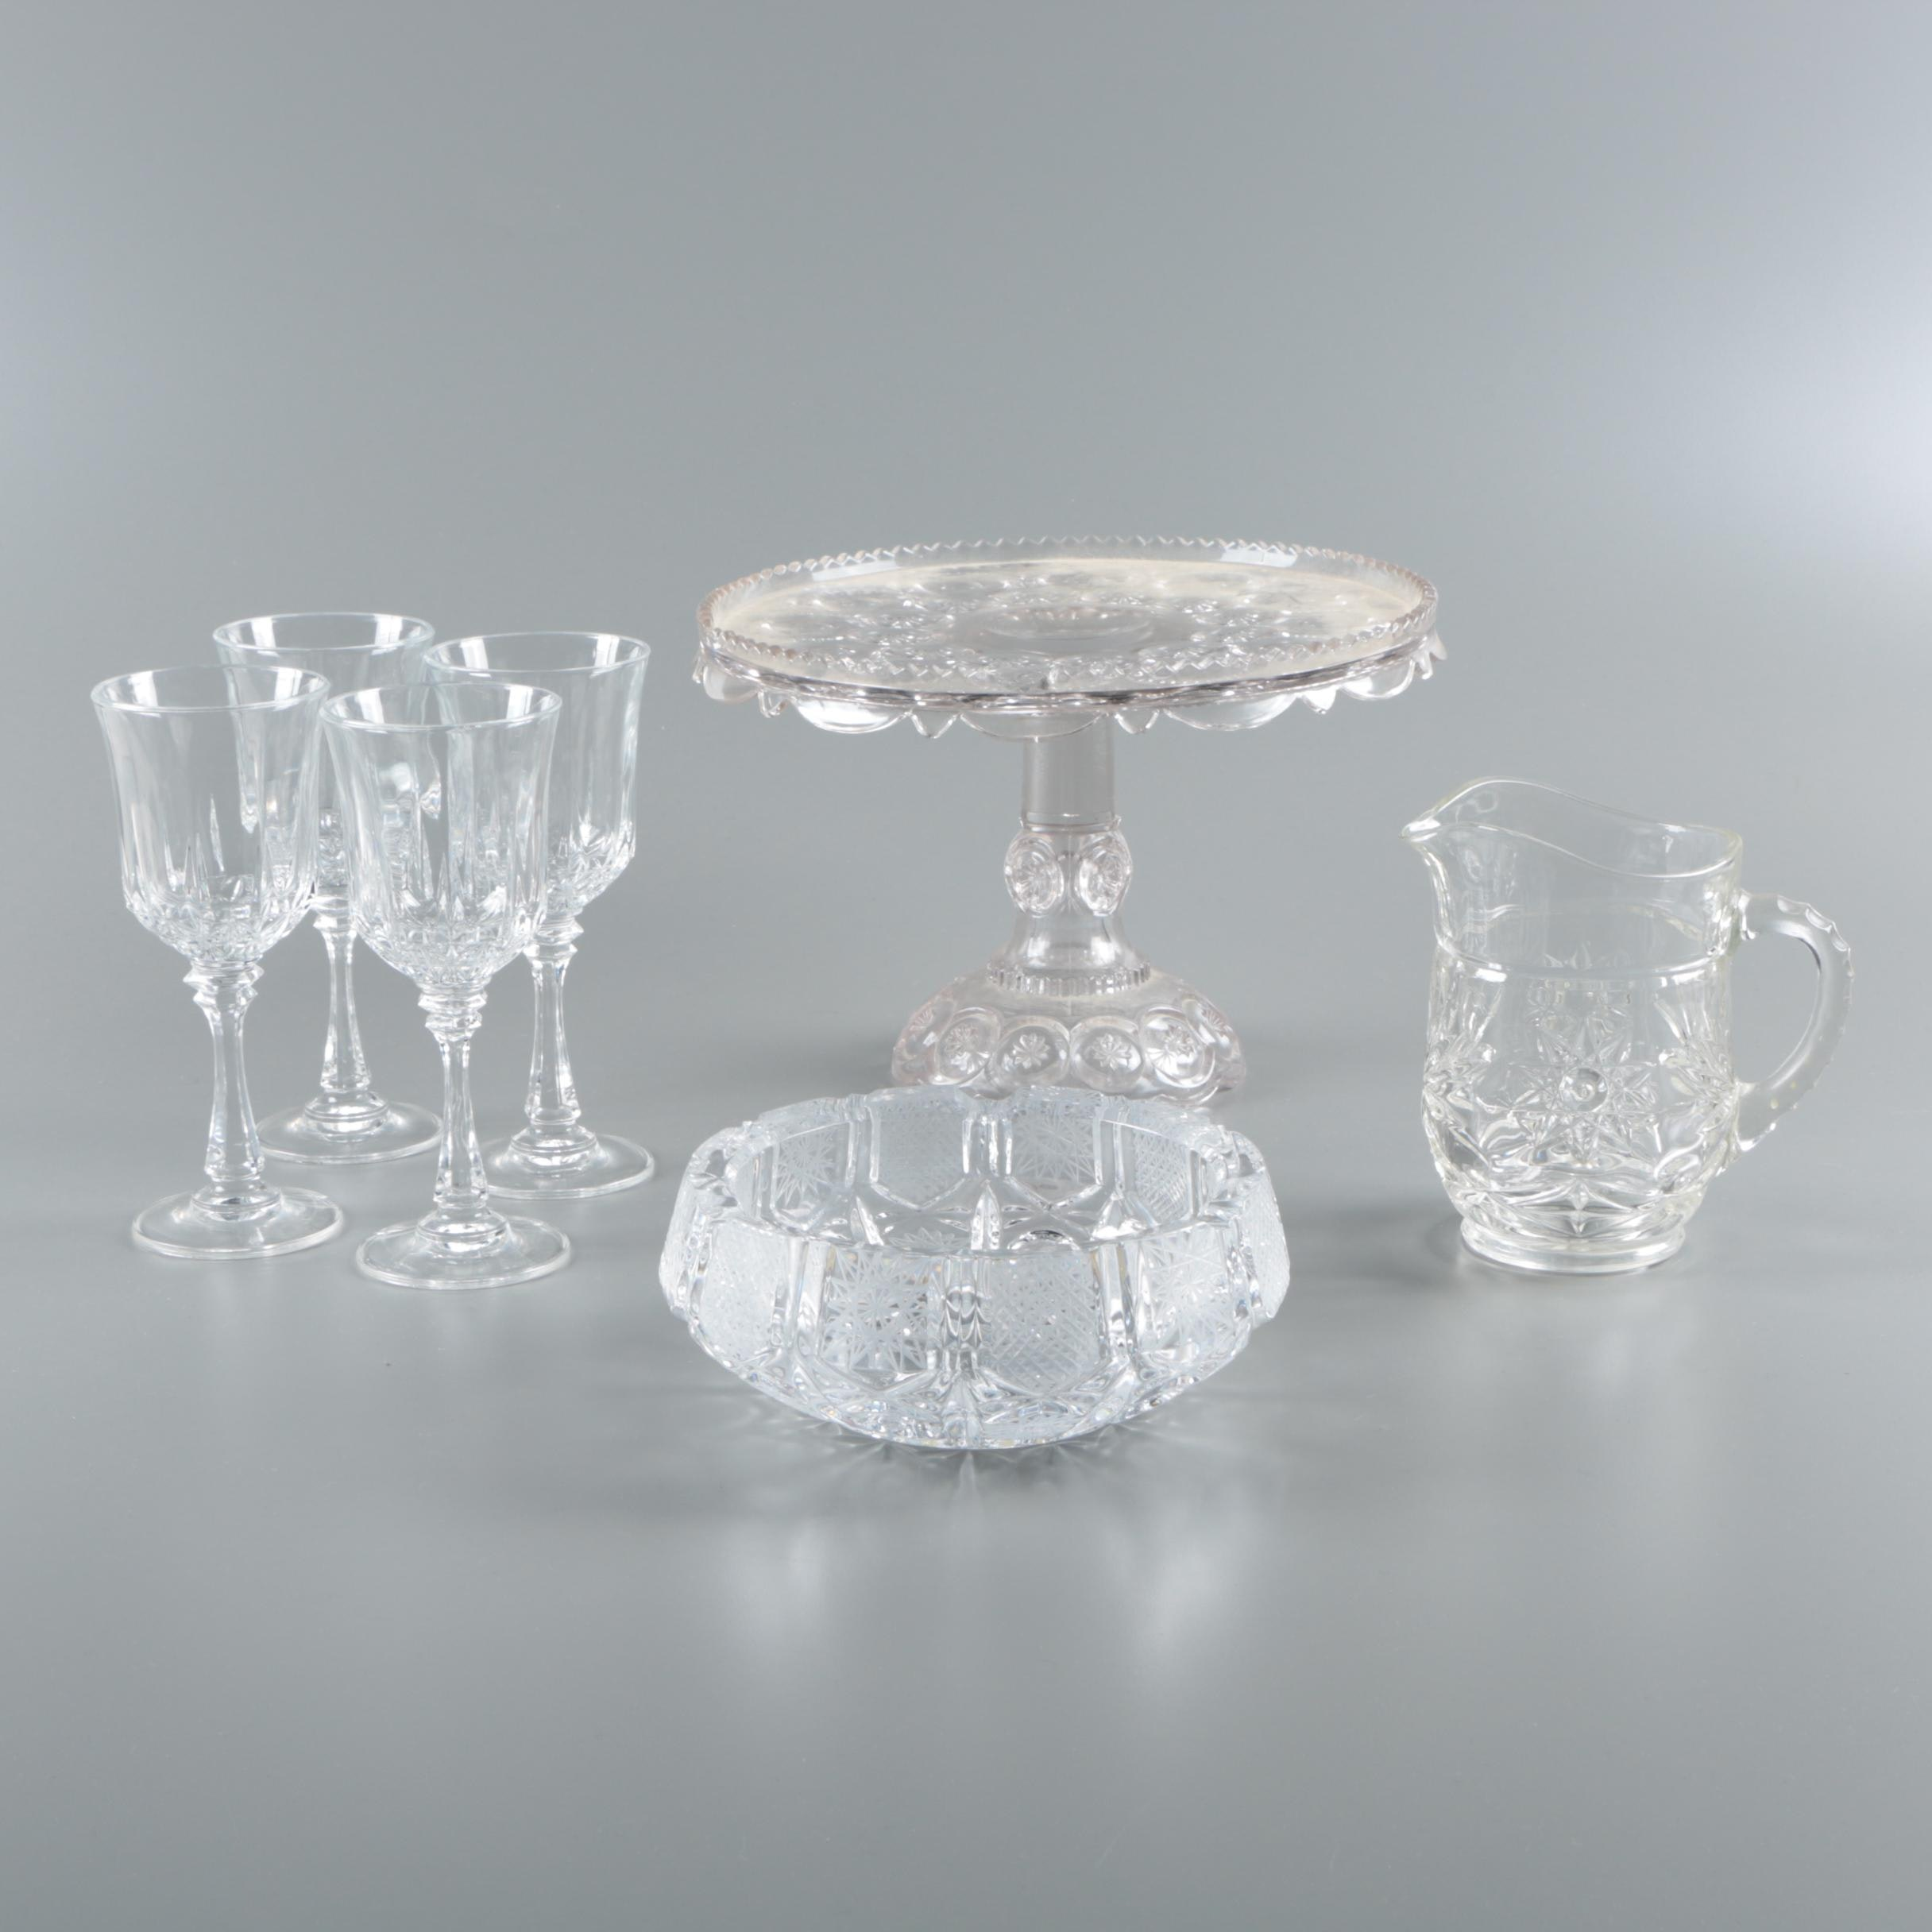 Crystal Wine Glasses and Ash Receiver with Glass Pitcher and Cake Stand